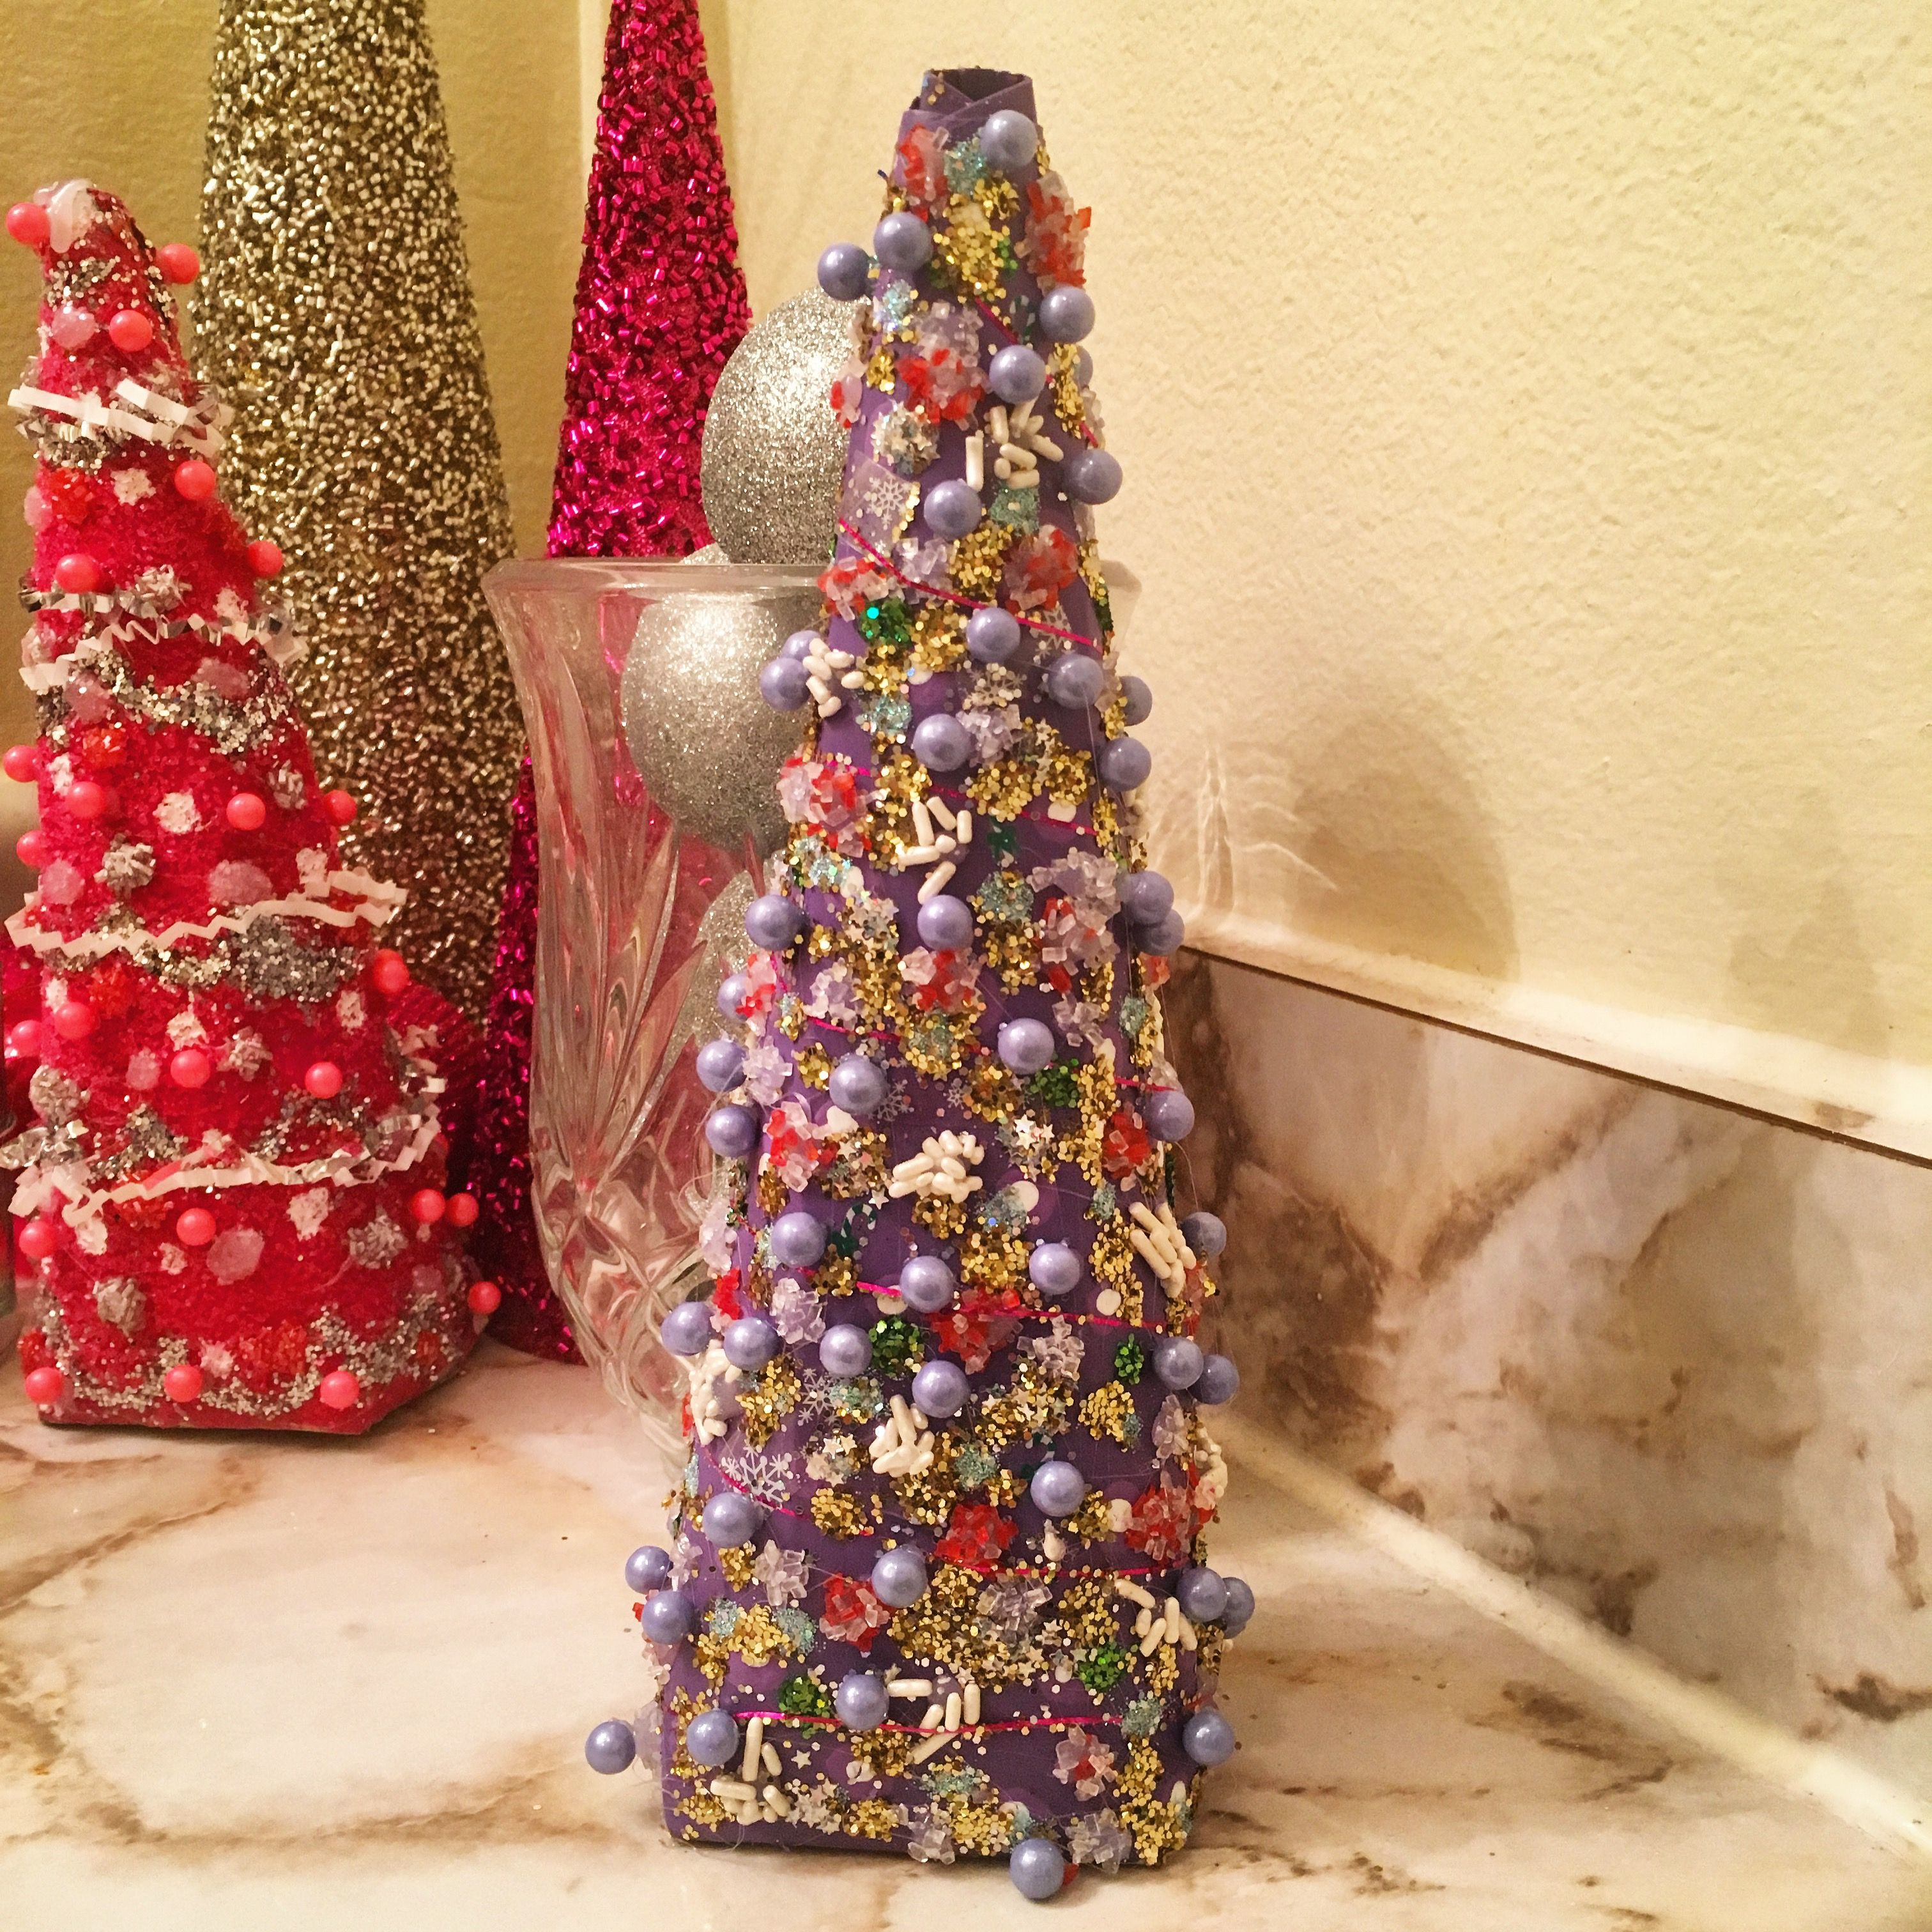 DIY Christmas tree made with the one liter